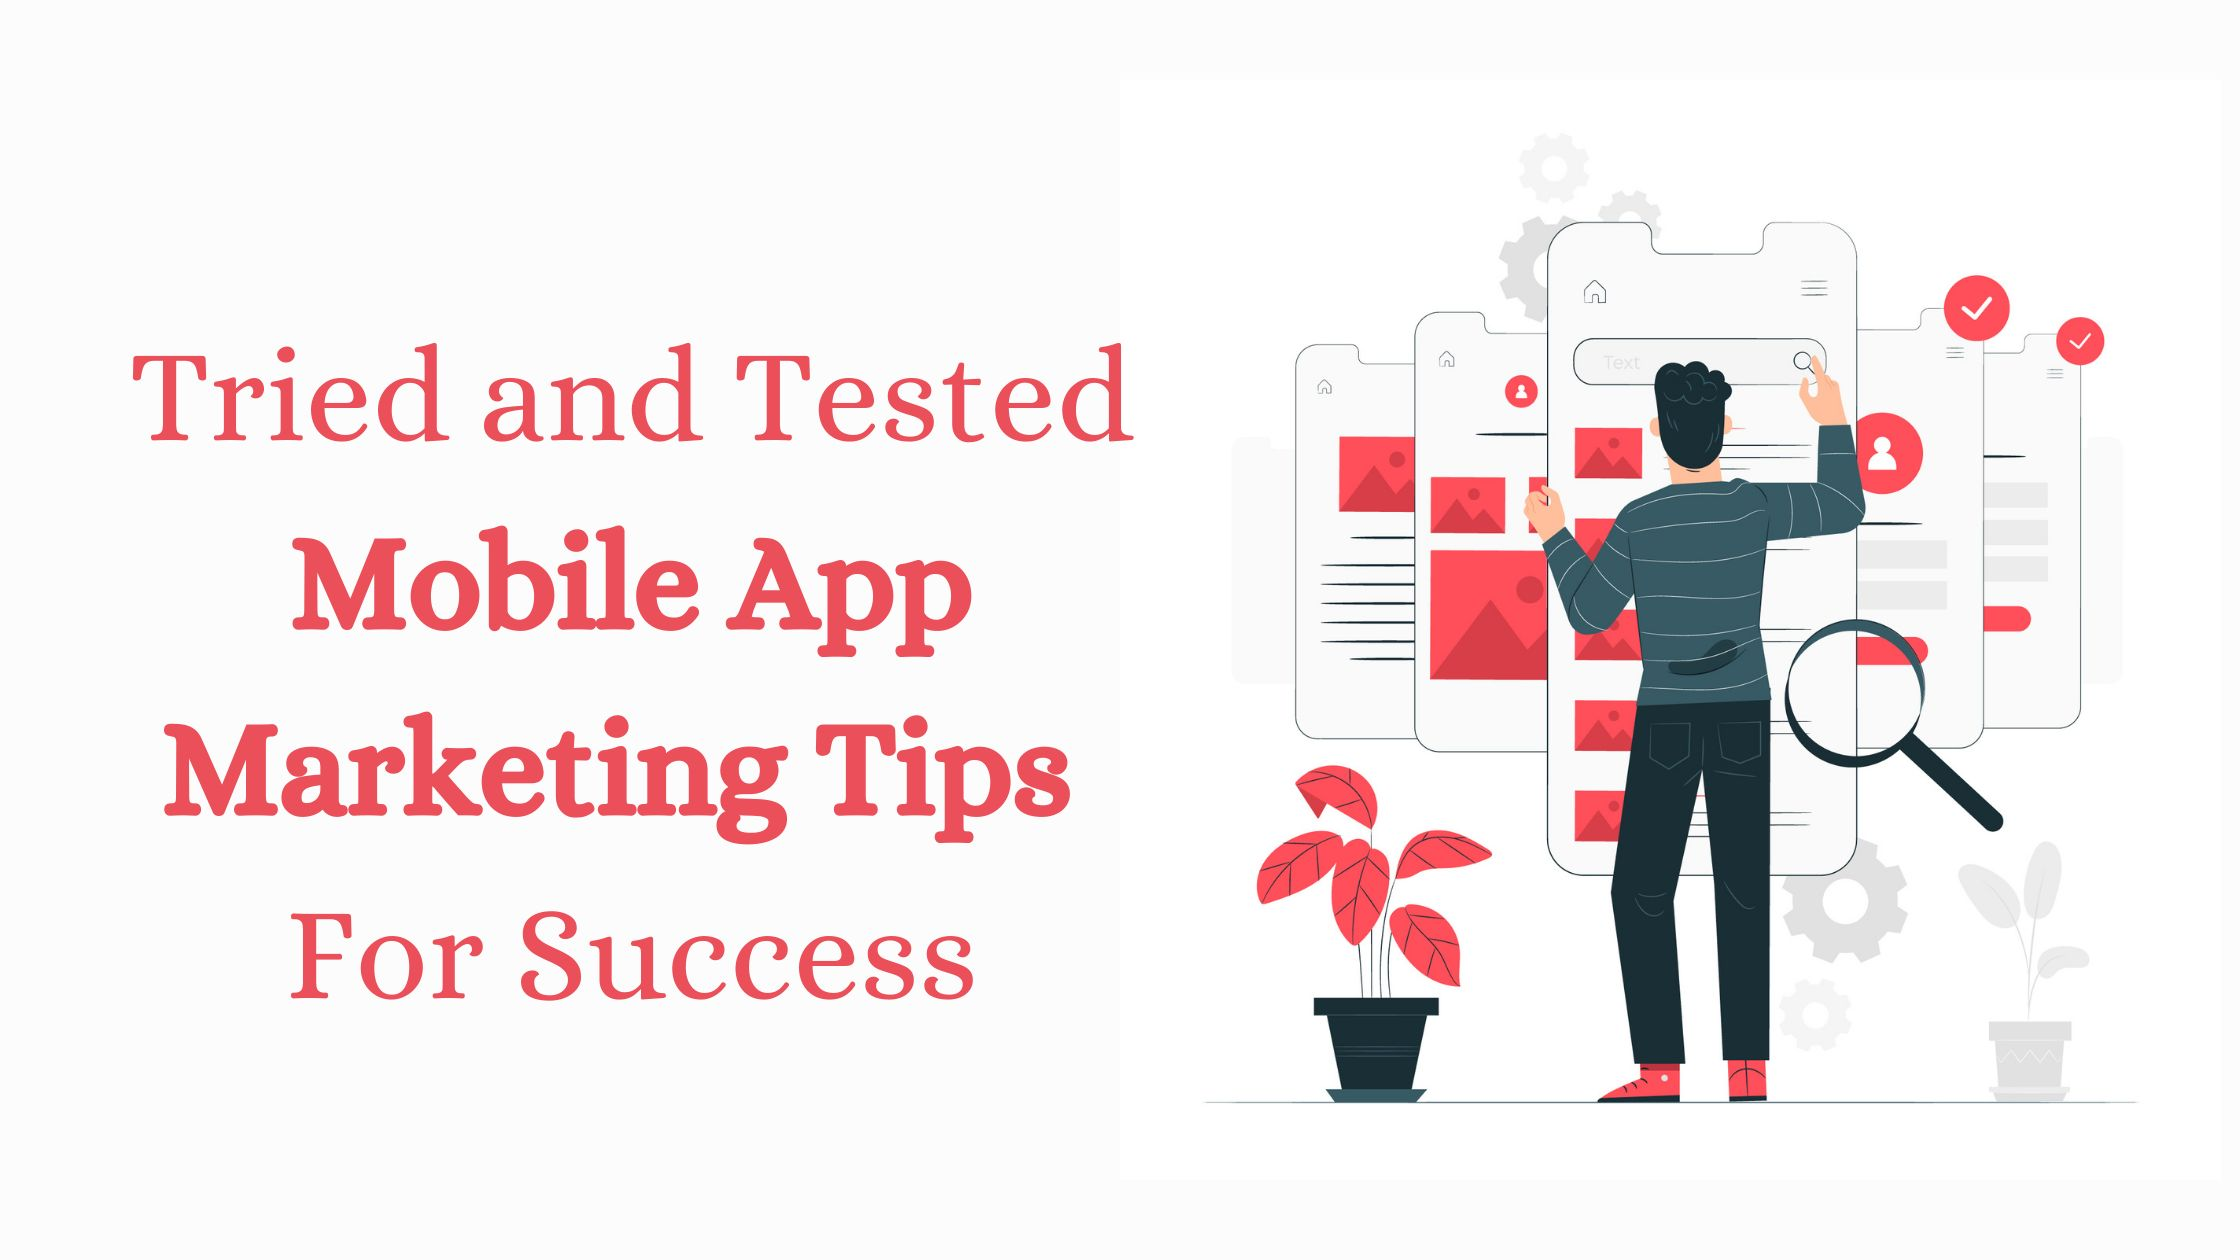 /pre-launch-to-post-launch-marketing-strategies-for-mobile-apps-zs3y350x feature image